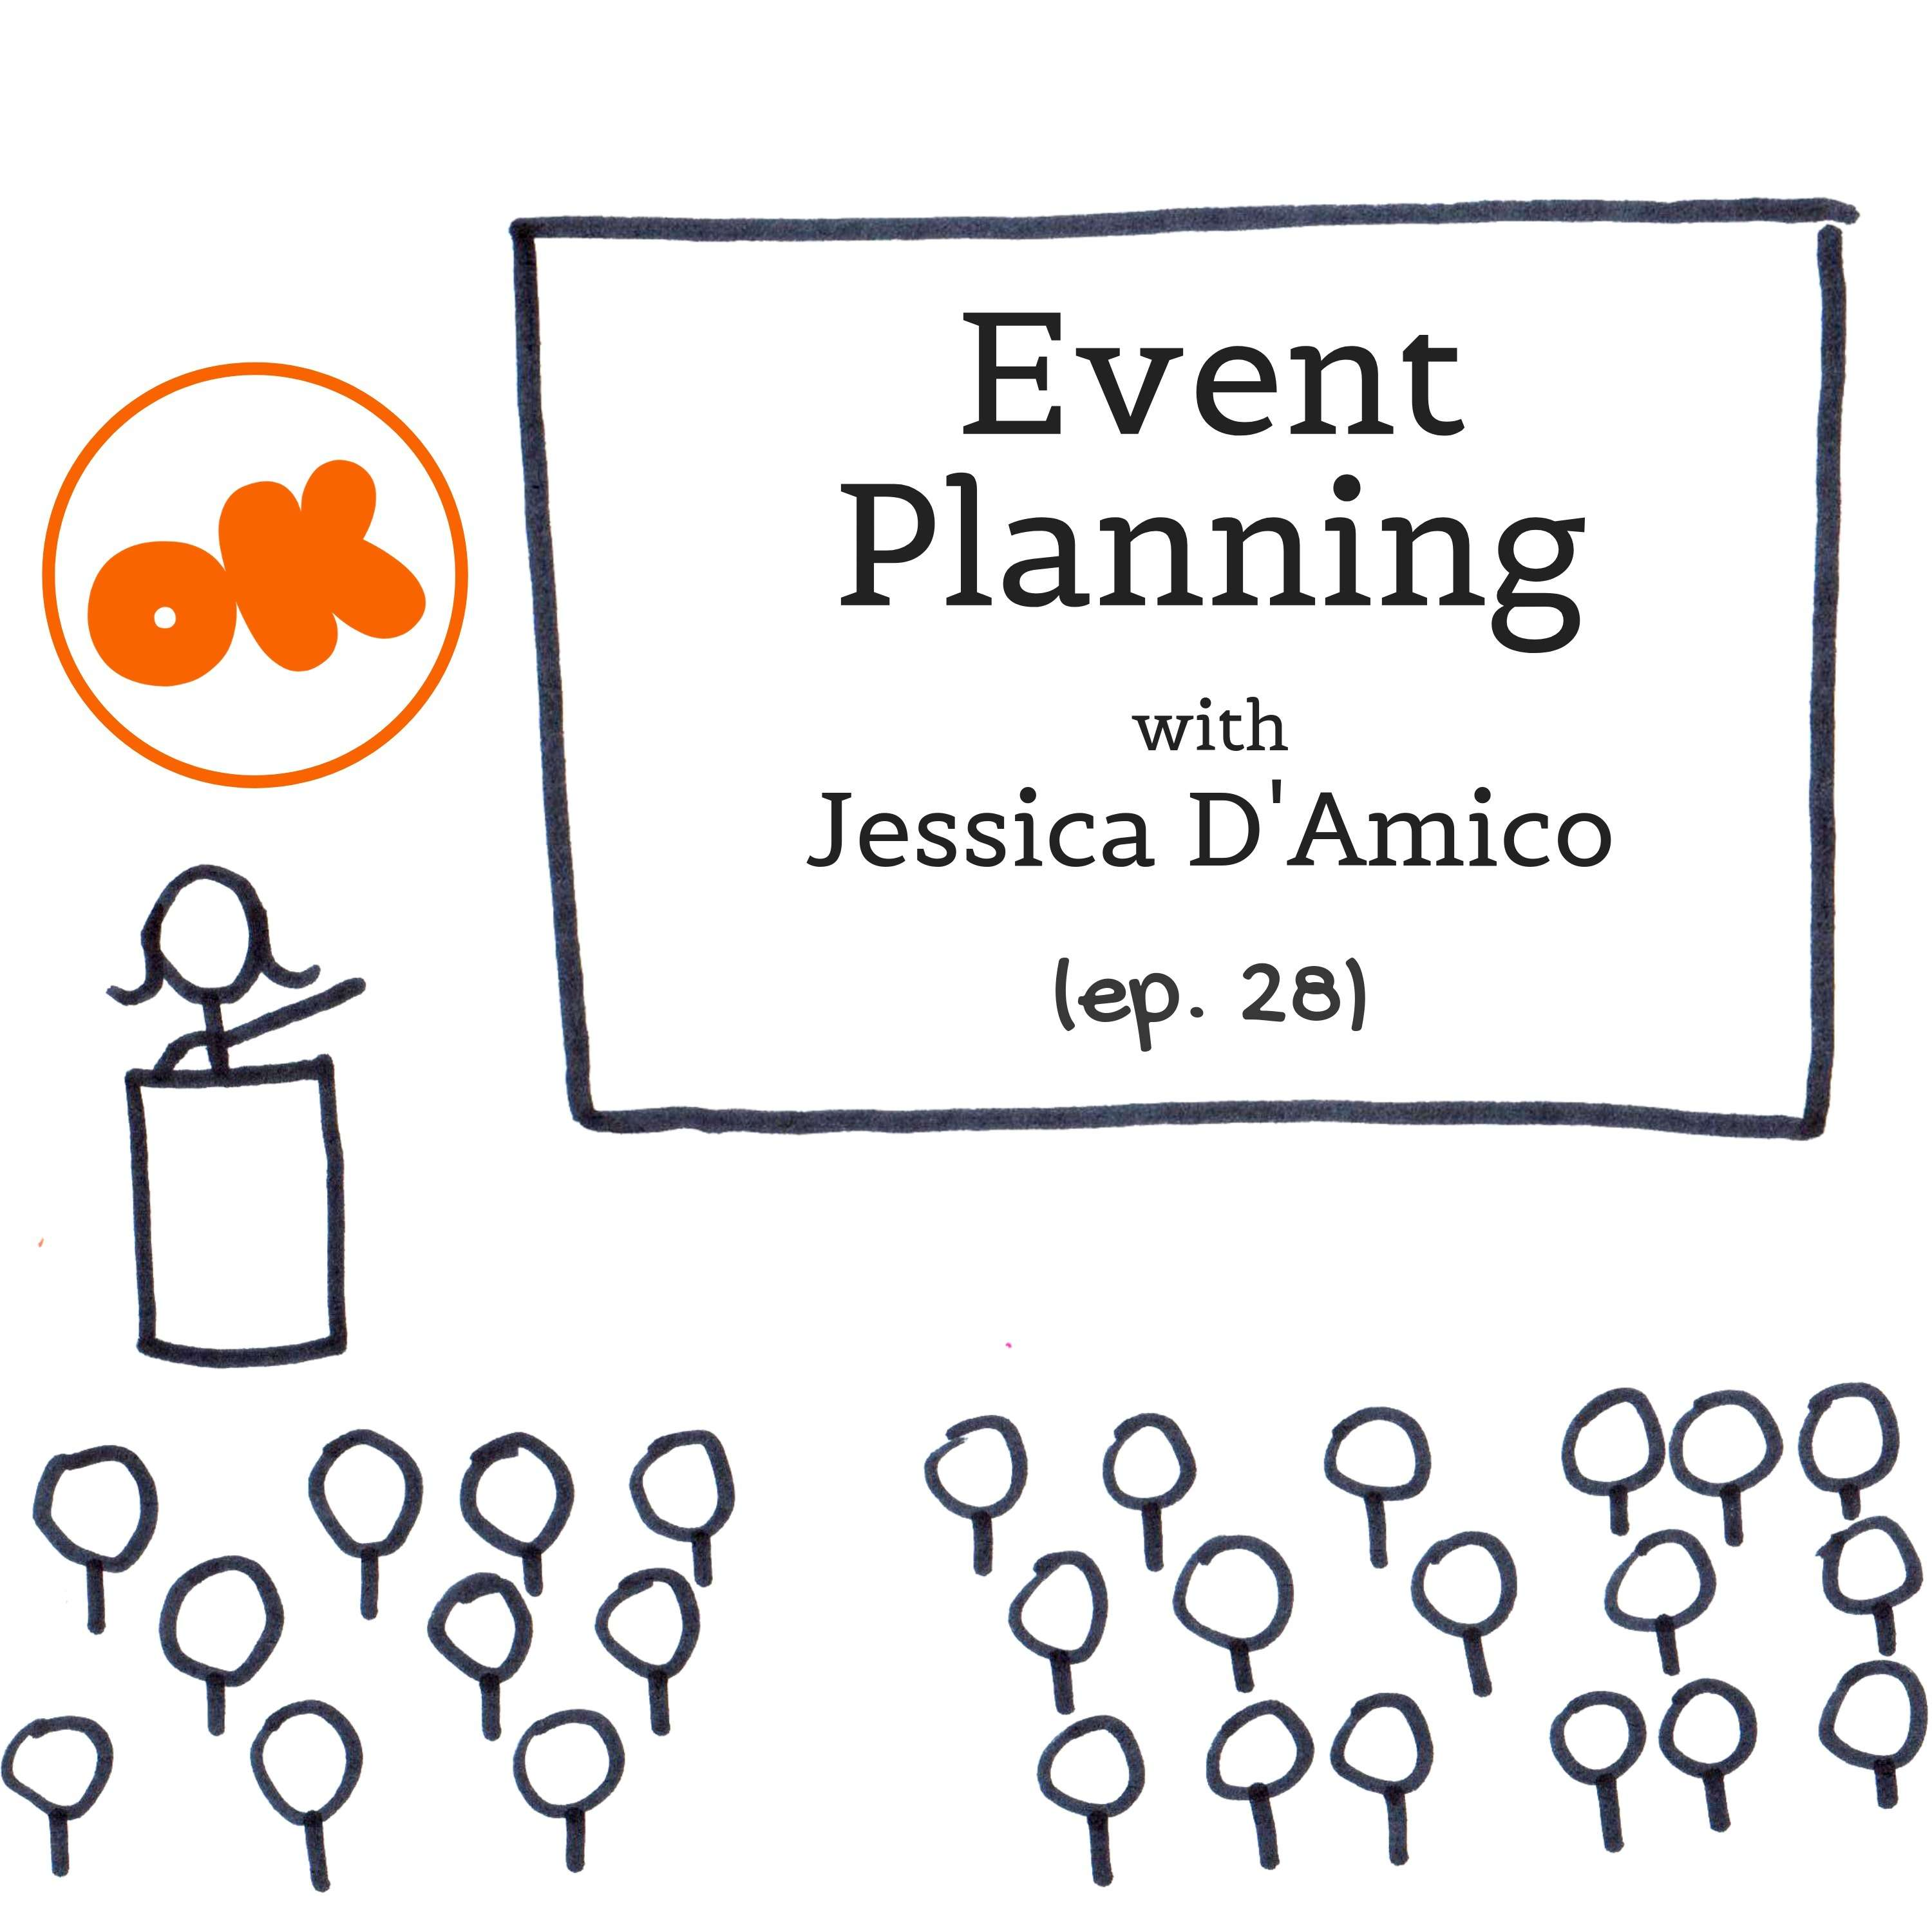 028. Event Planning with Jessica D'Amico